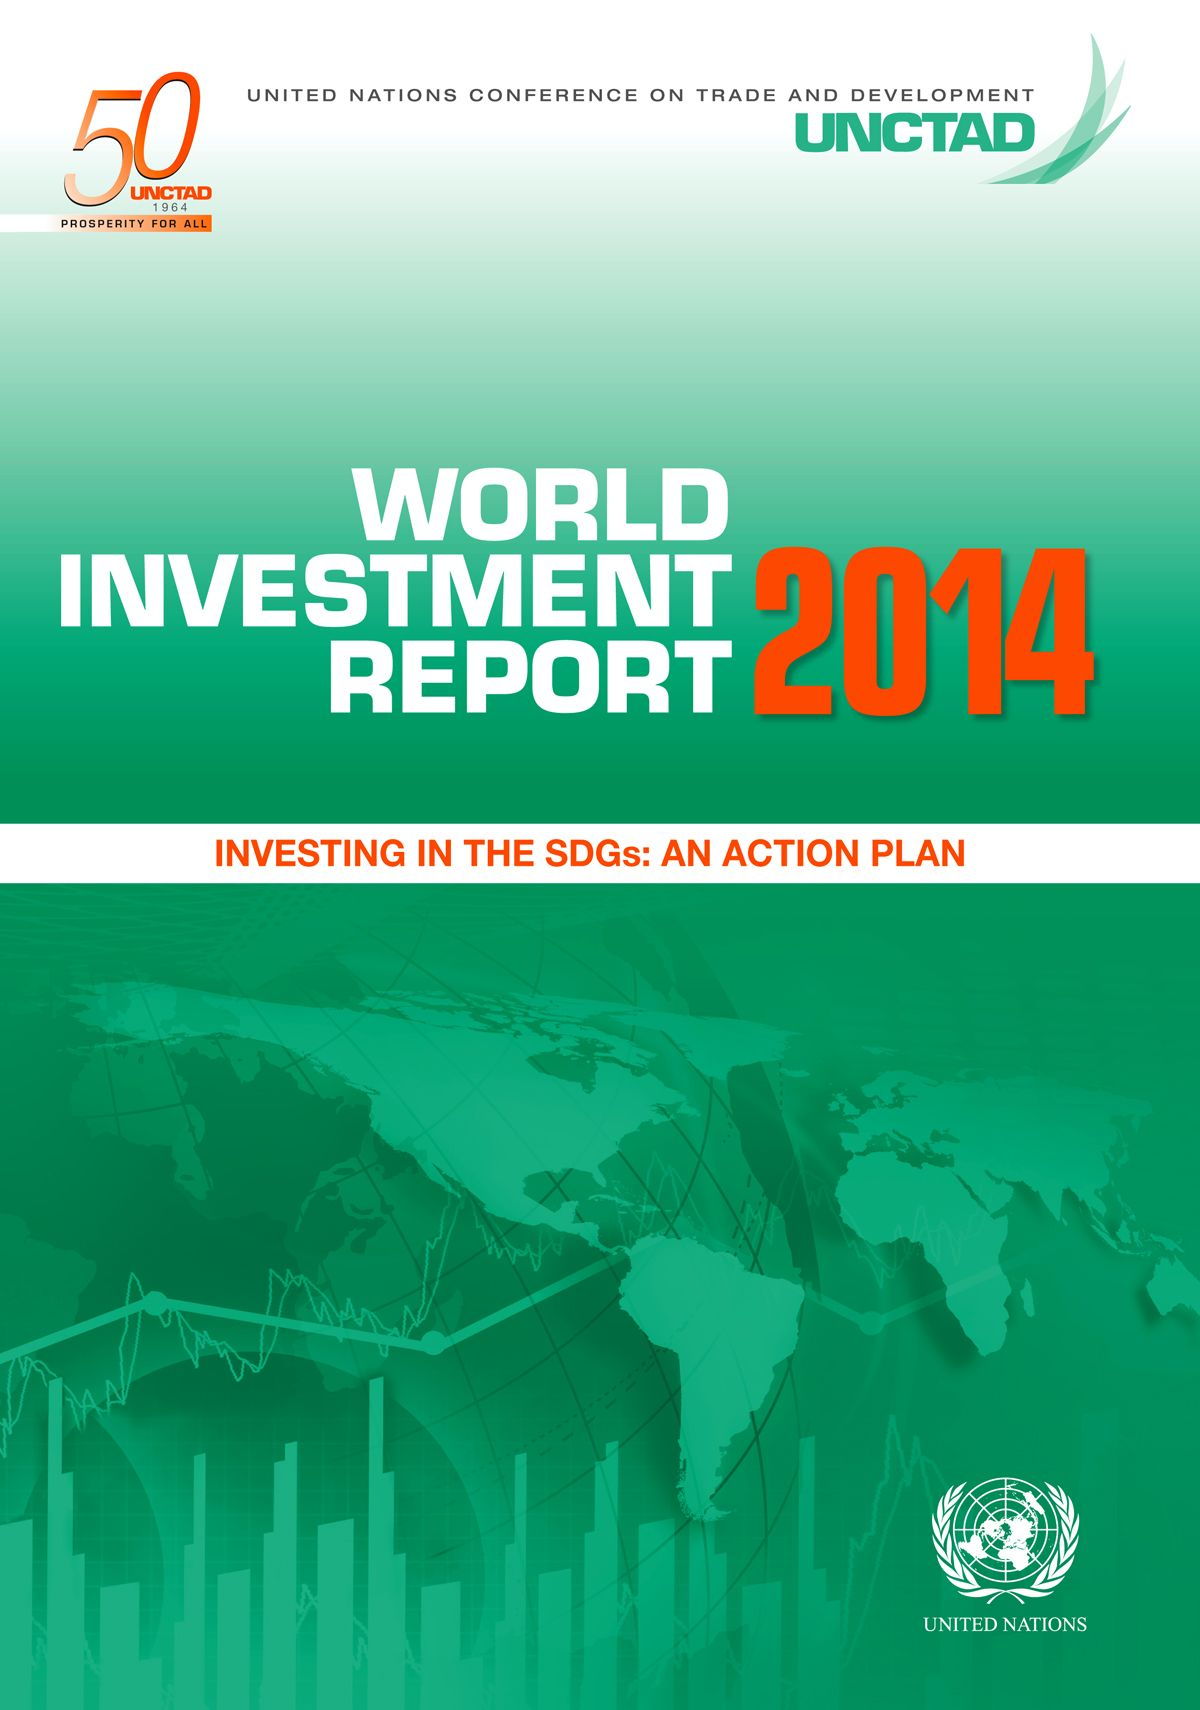 The World Investment Report Series Provides The Latest